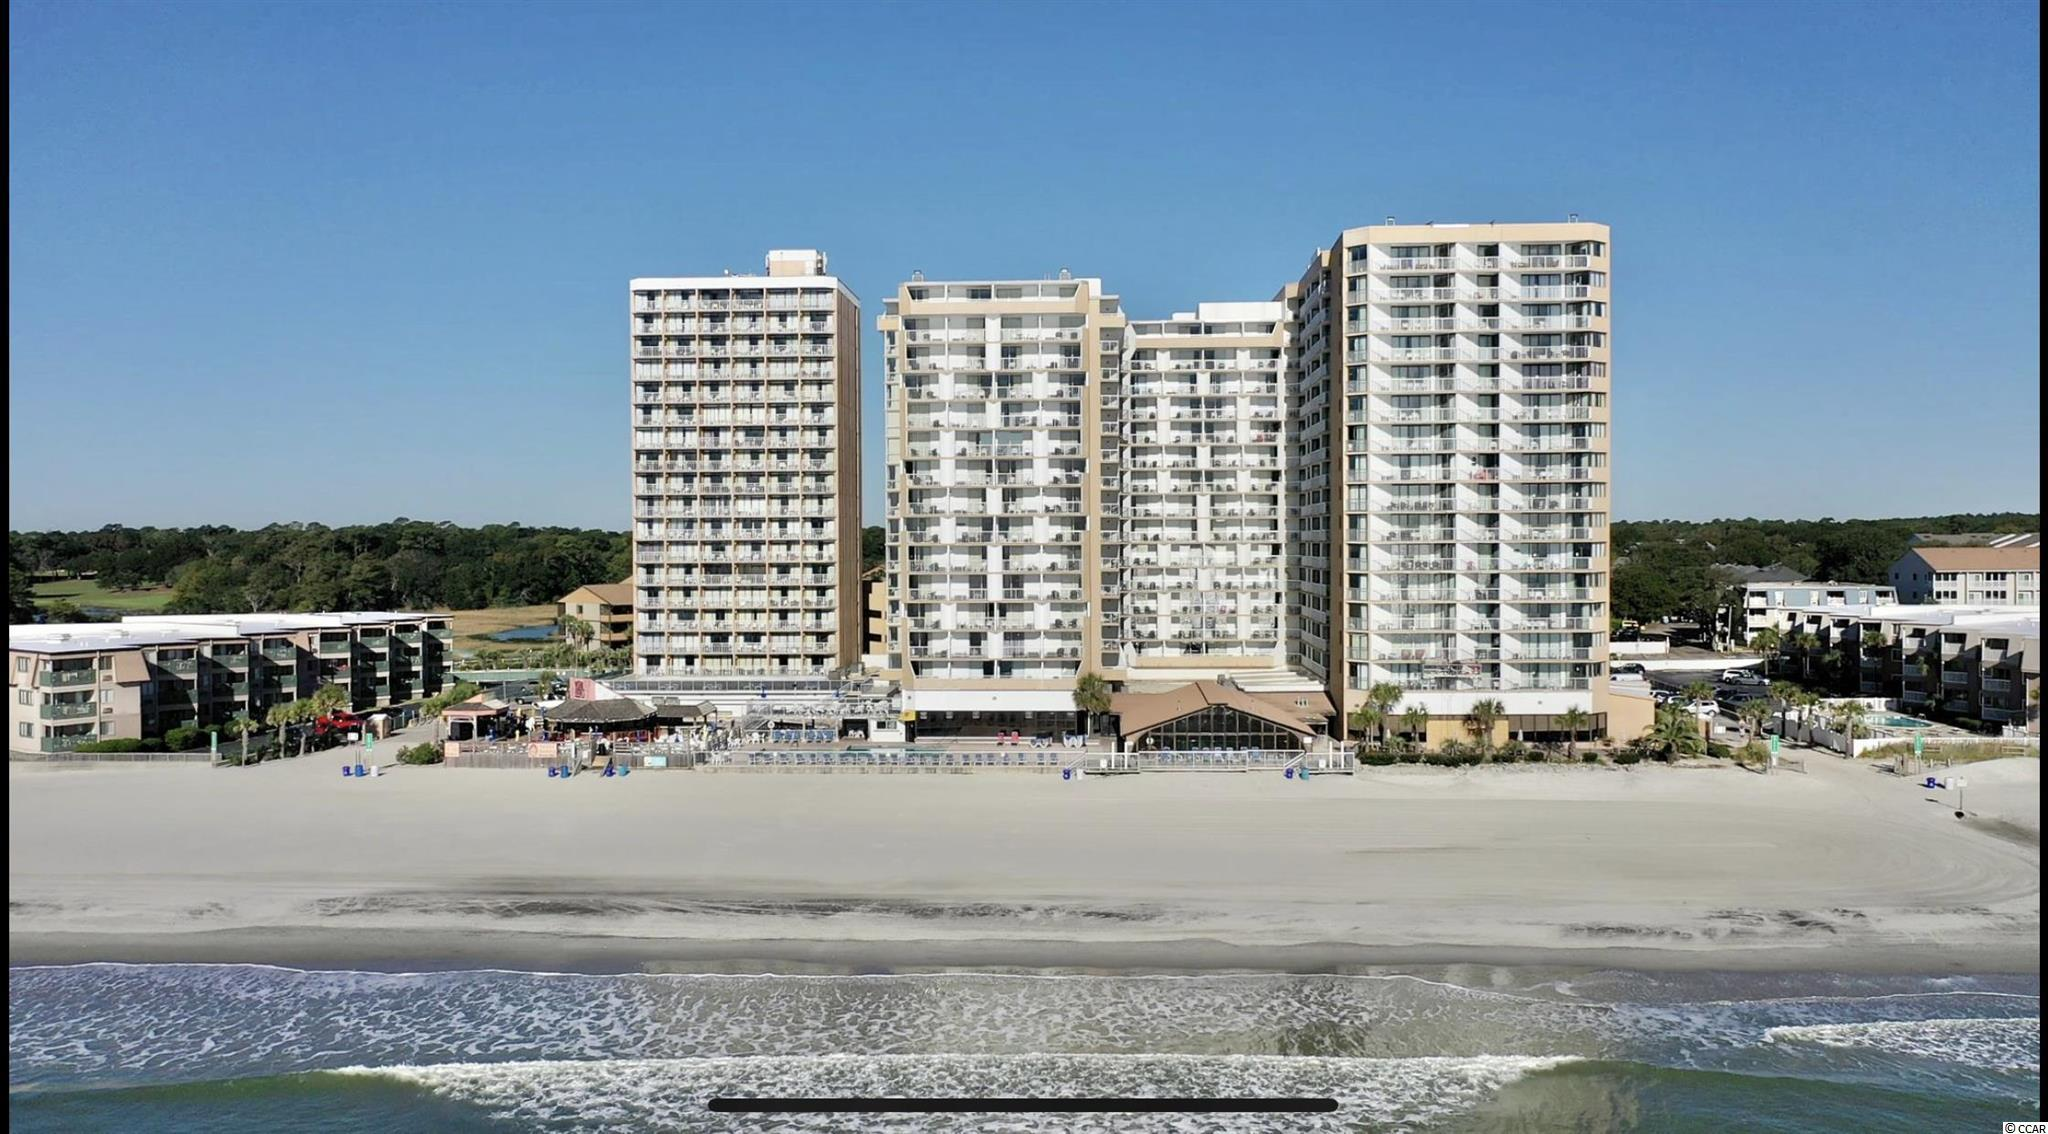 """2 Ocean Front condos for sale with """"lock out"""" door connecting them !  See room 809 @ The Sands Ocean Club"""